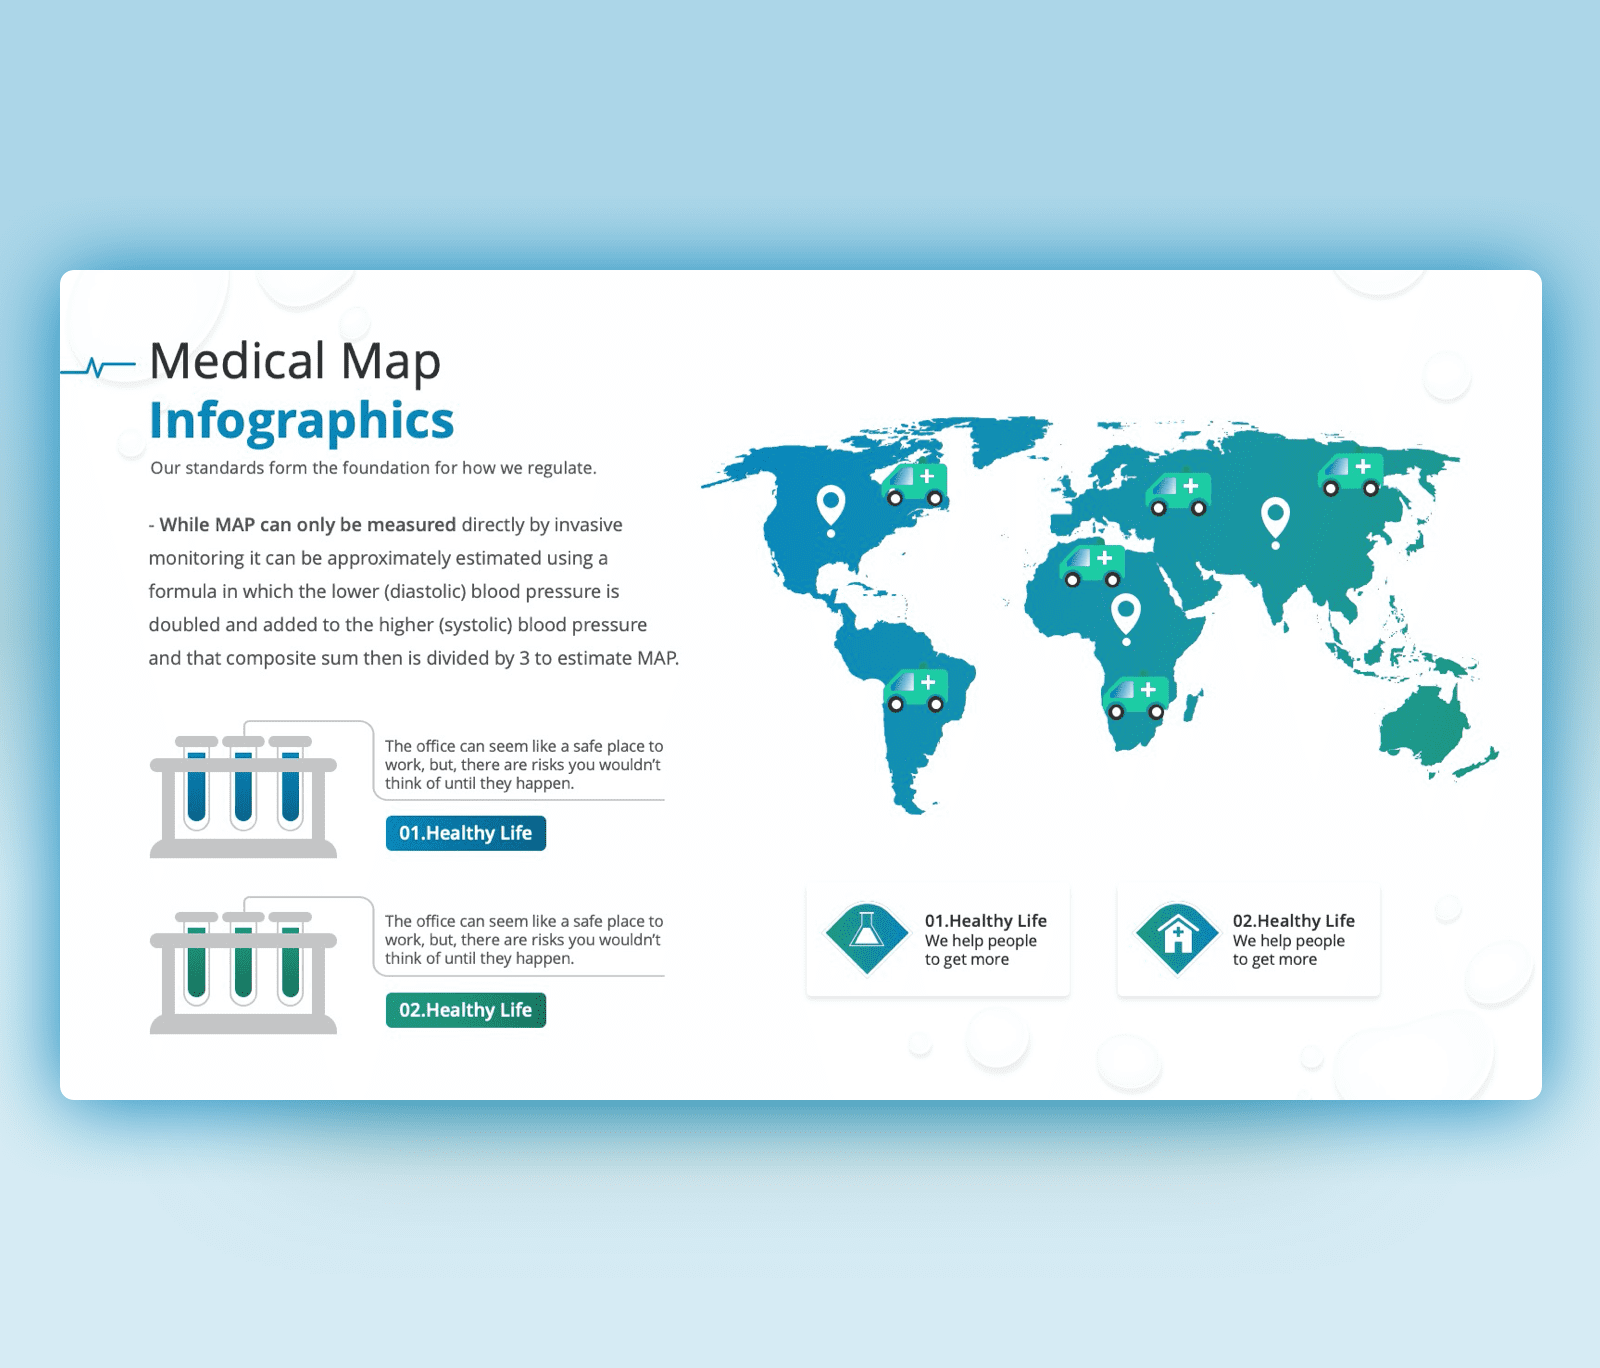 Medical Map Infographic PowerPoint Template